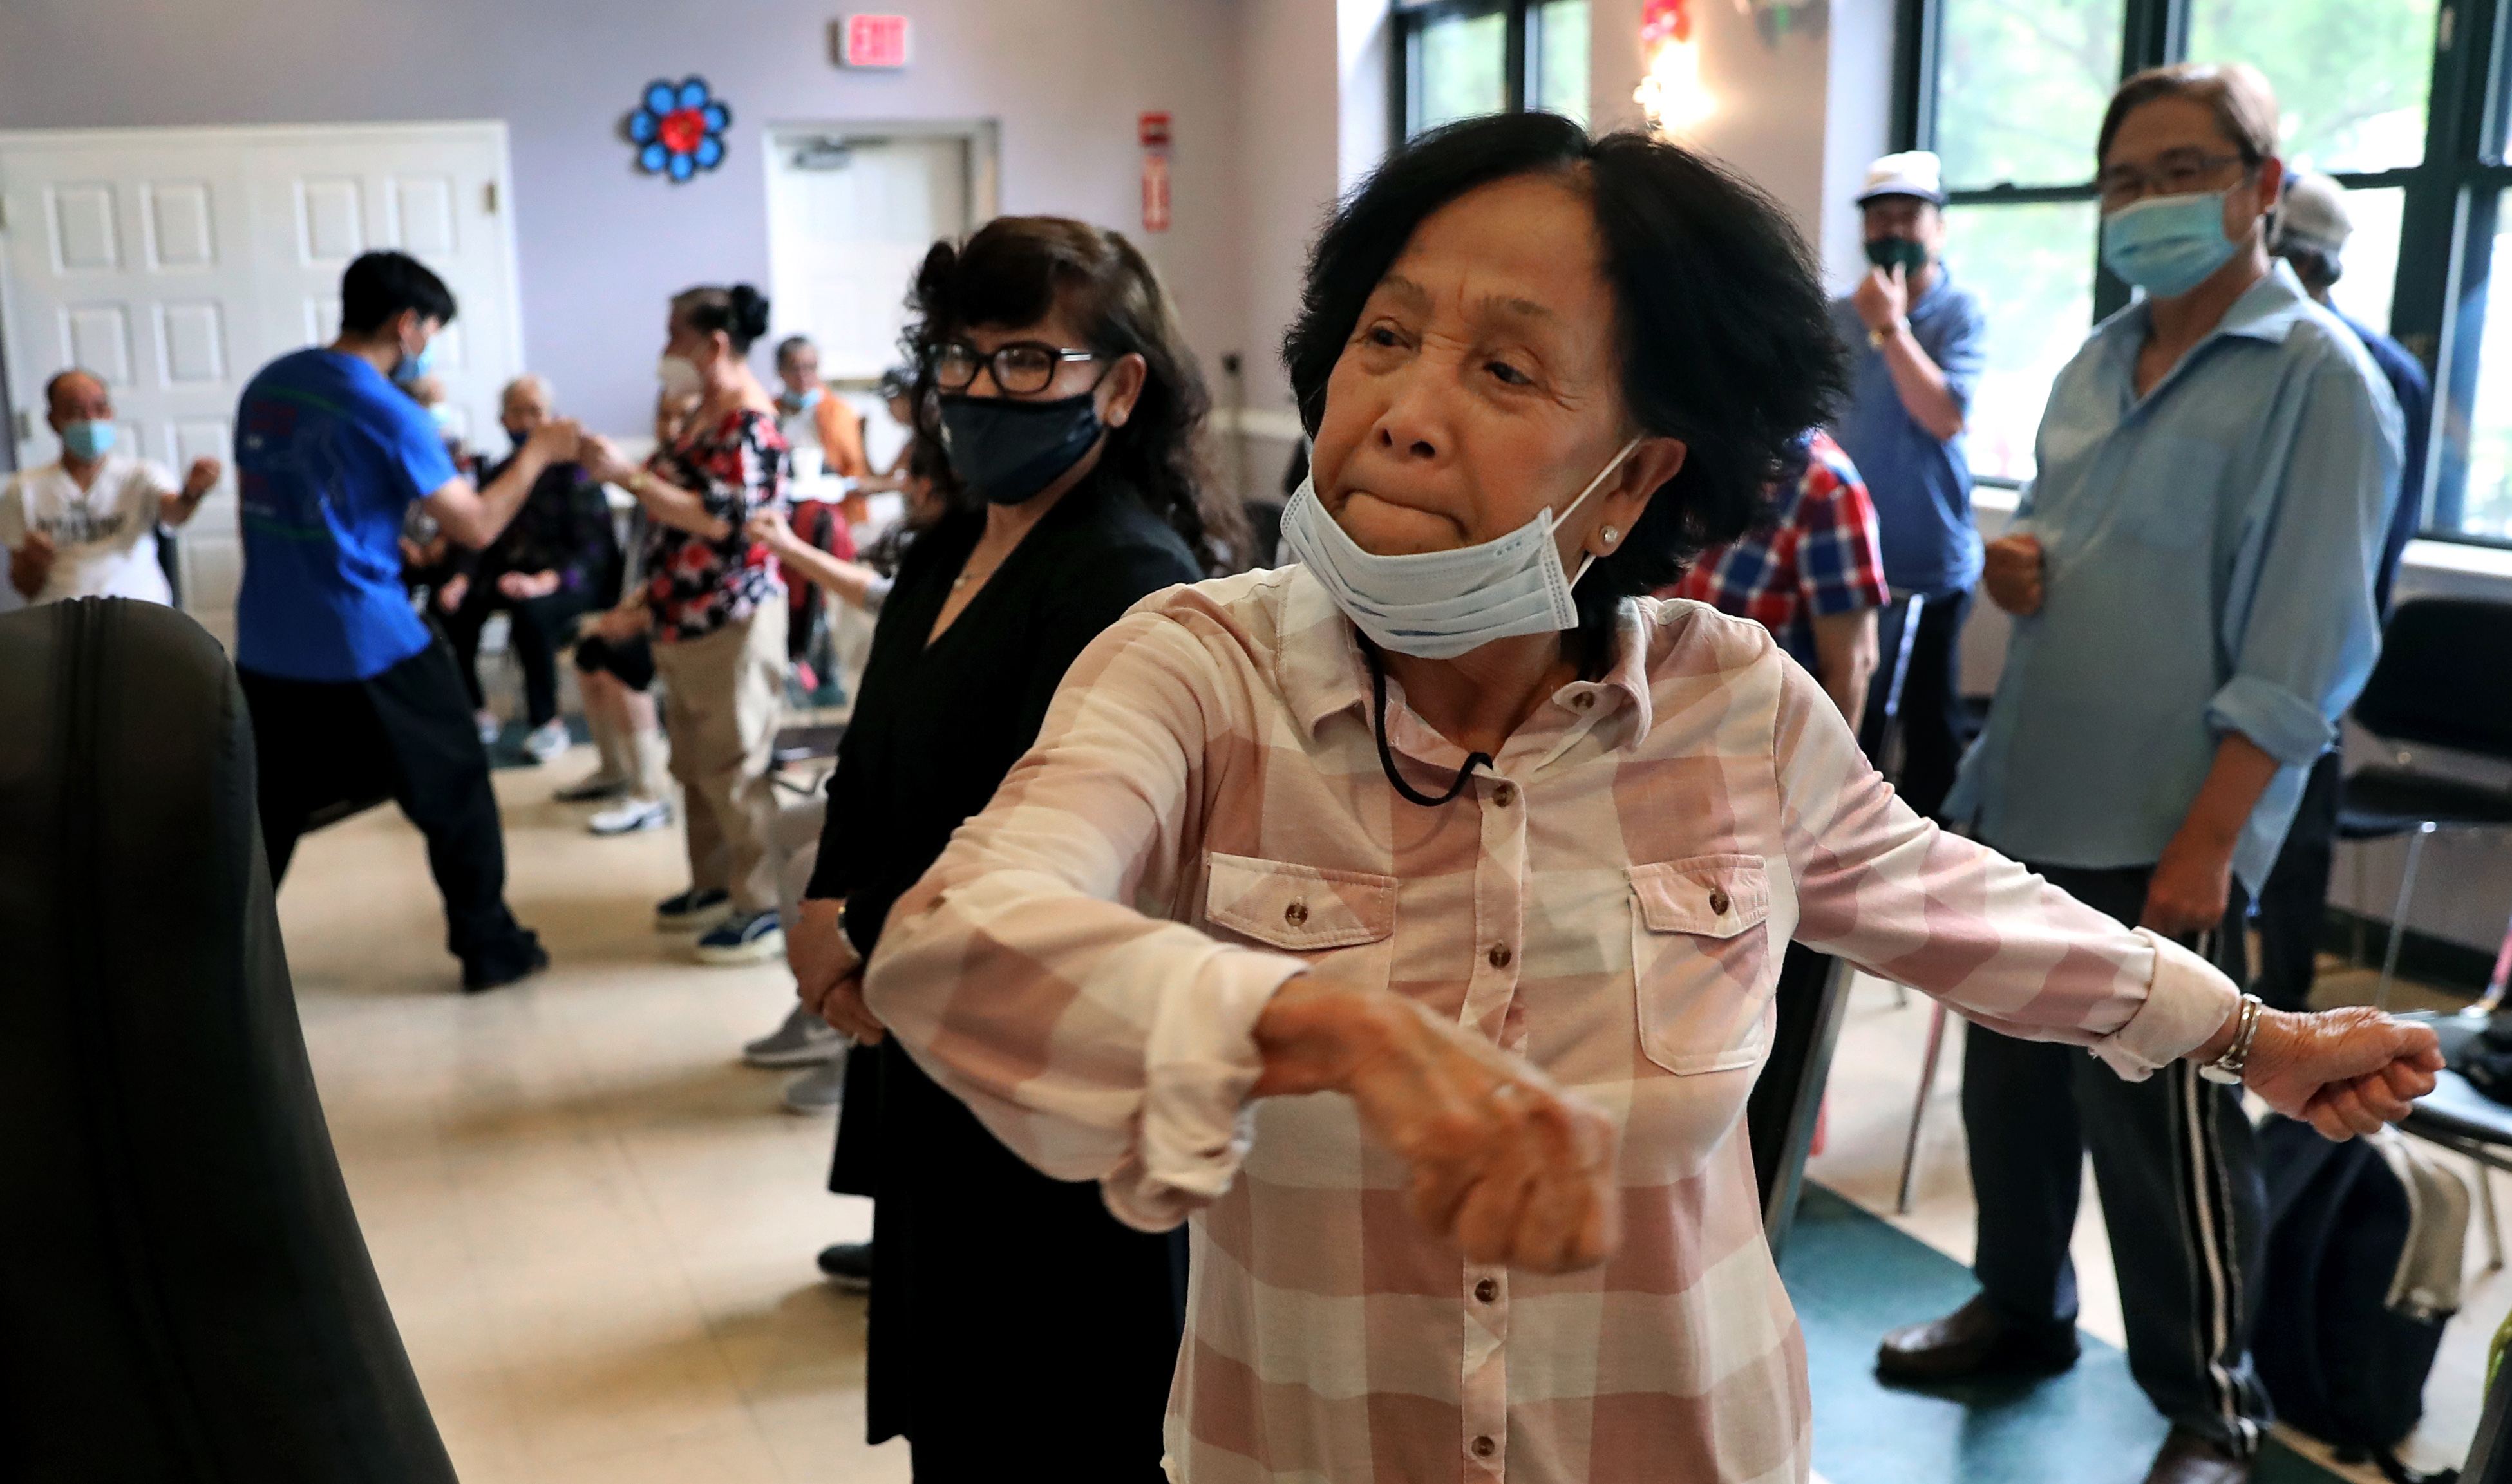 Ton Do, 75, practiced throwing a punch during a class in self-defense at VietAID's community center in Fields Corner.